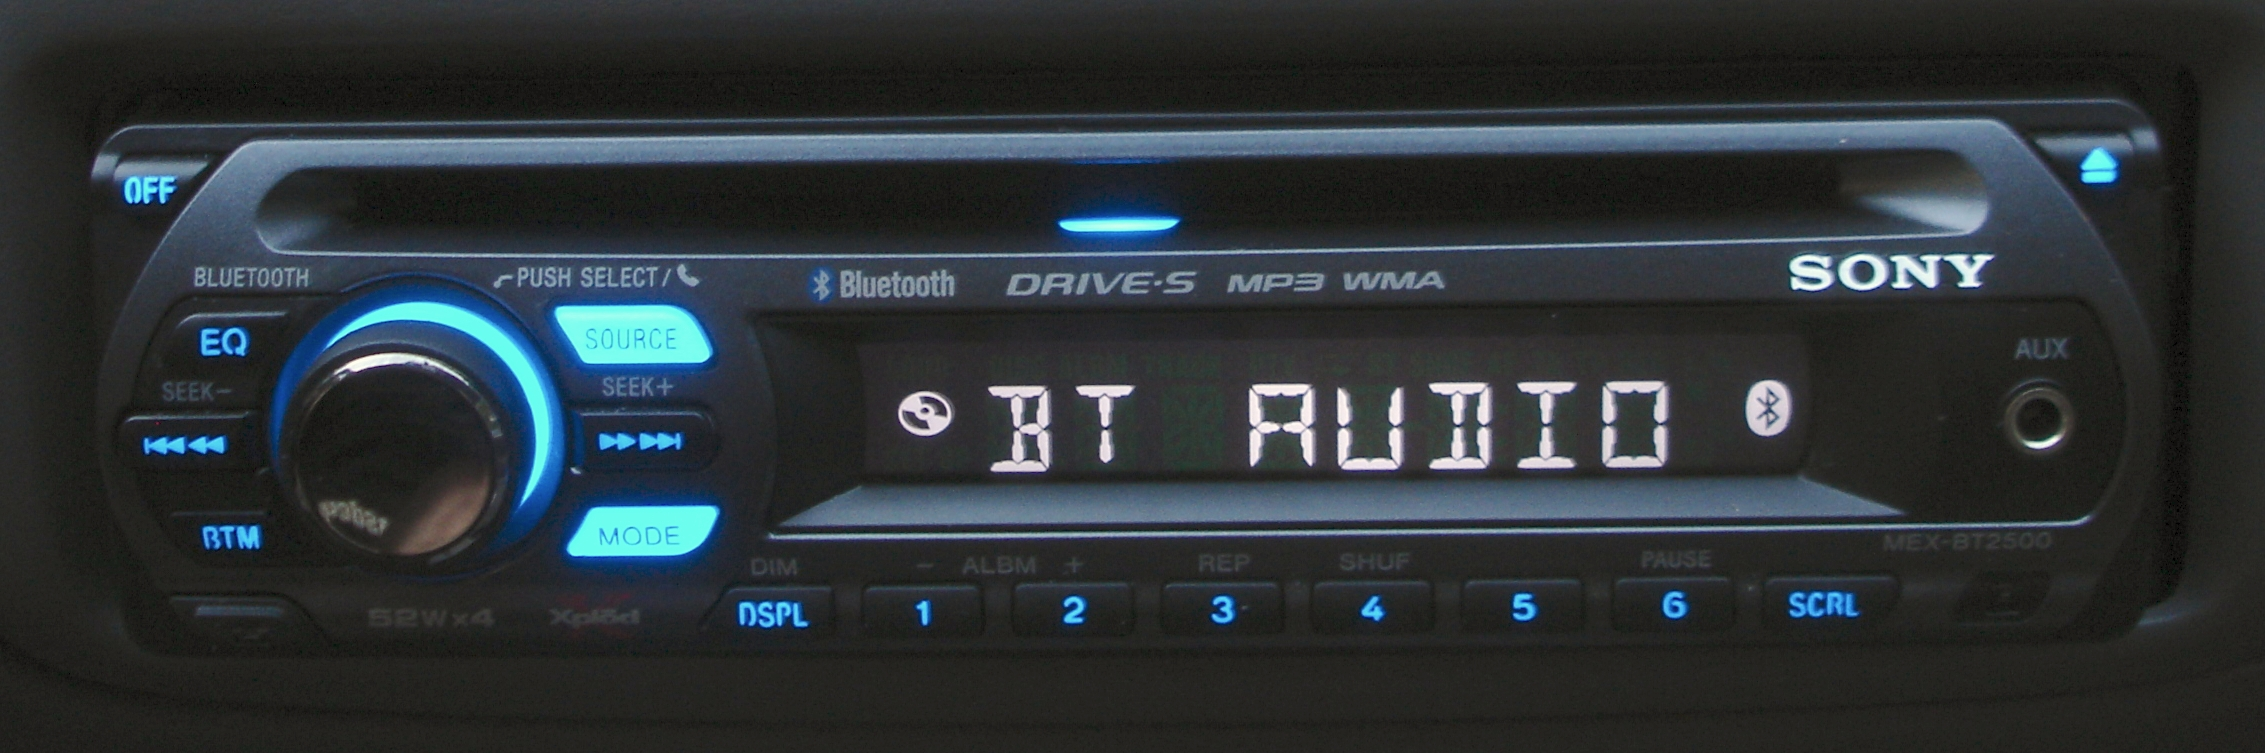 sony bluetooth car stereo wiring diagram gm trailer harness file:sony mex-bt2500 xplod head unit illuminated-2.jpg - wikimedia commons